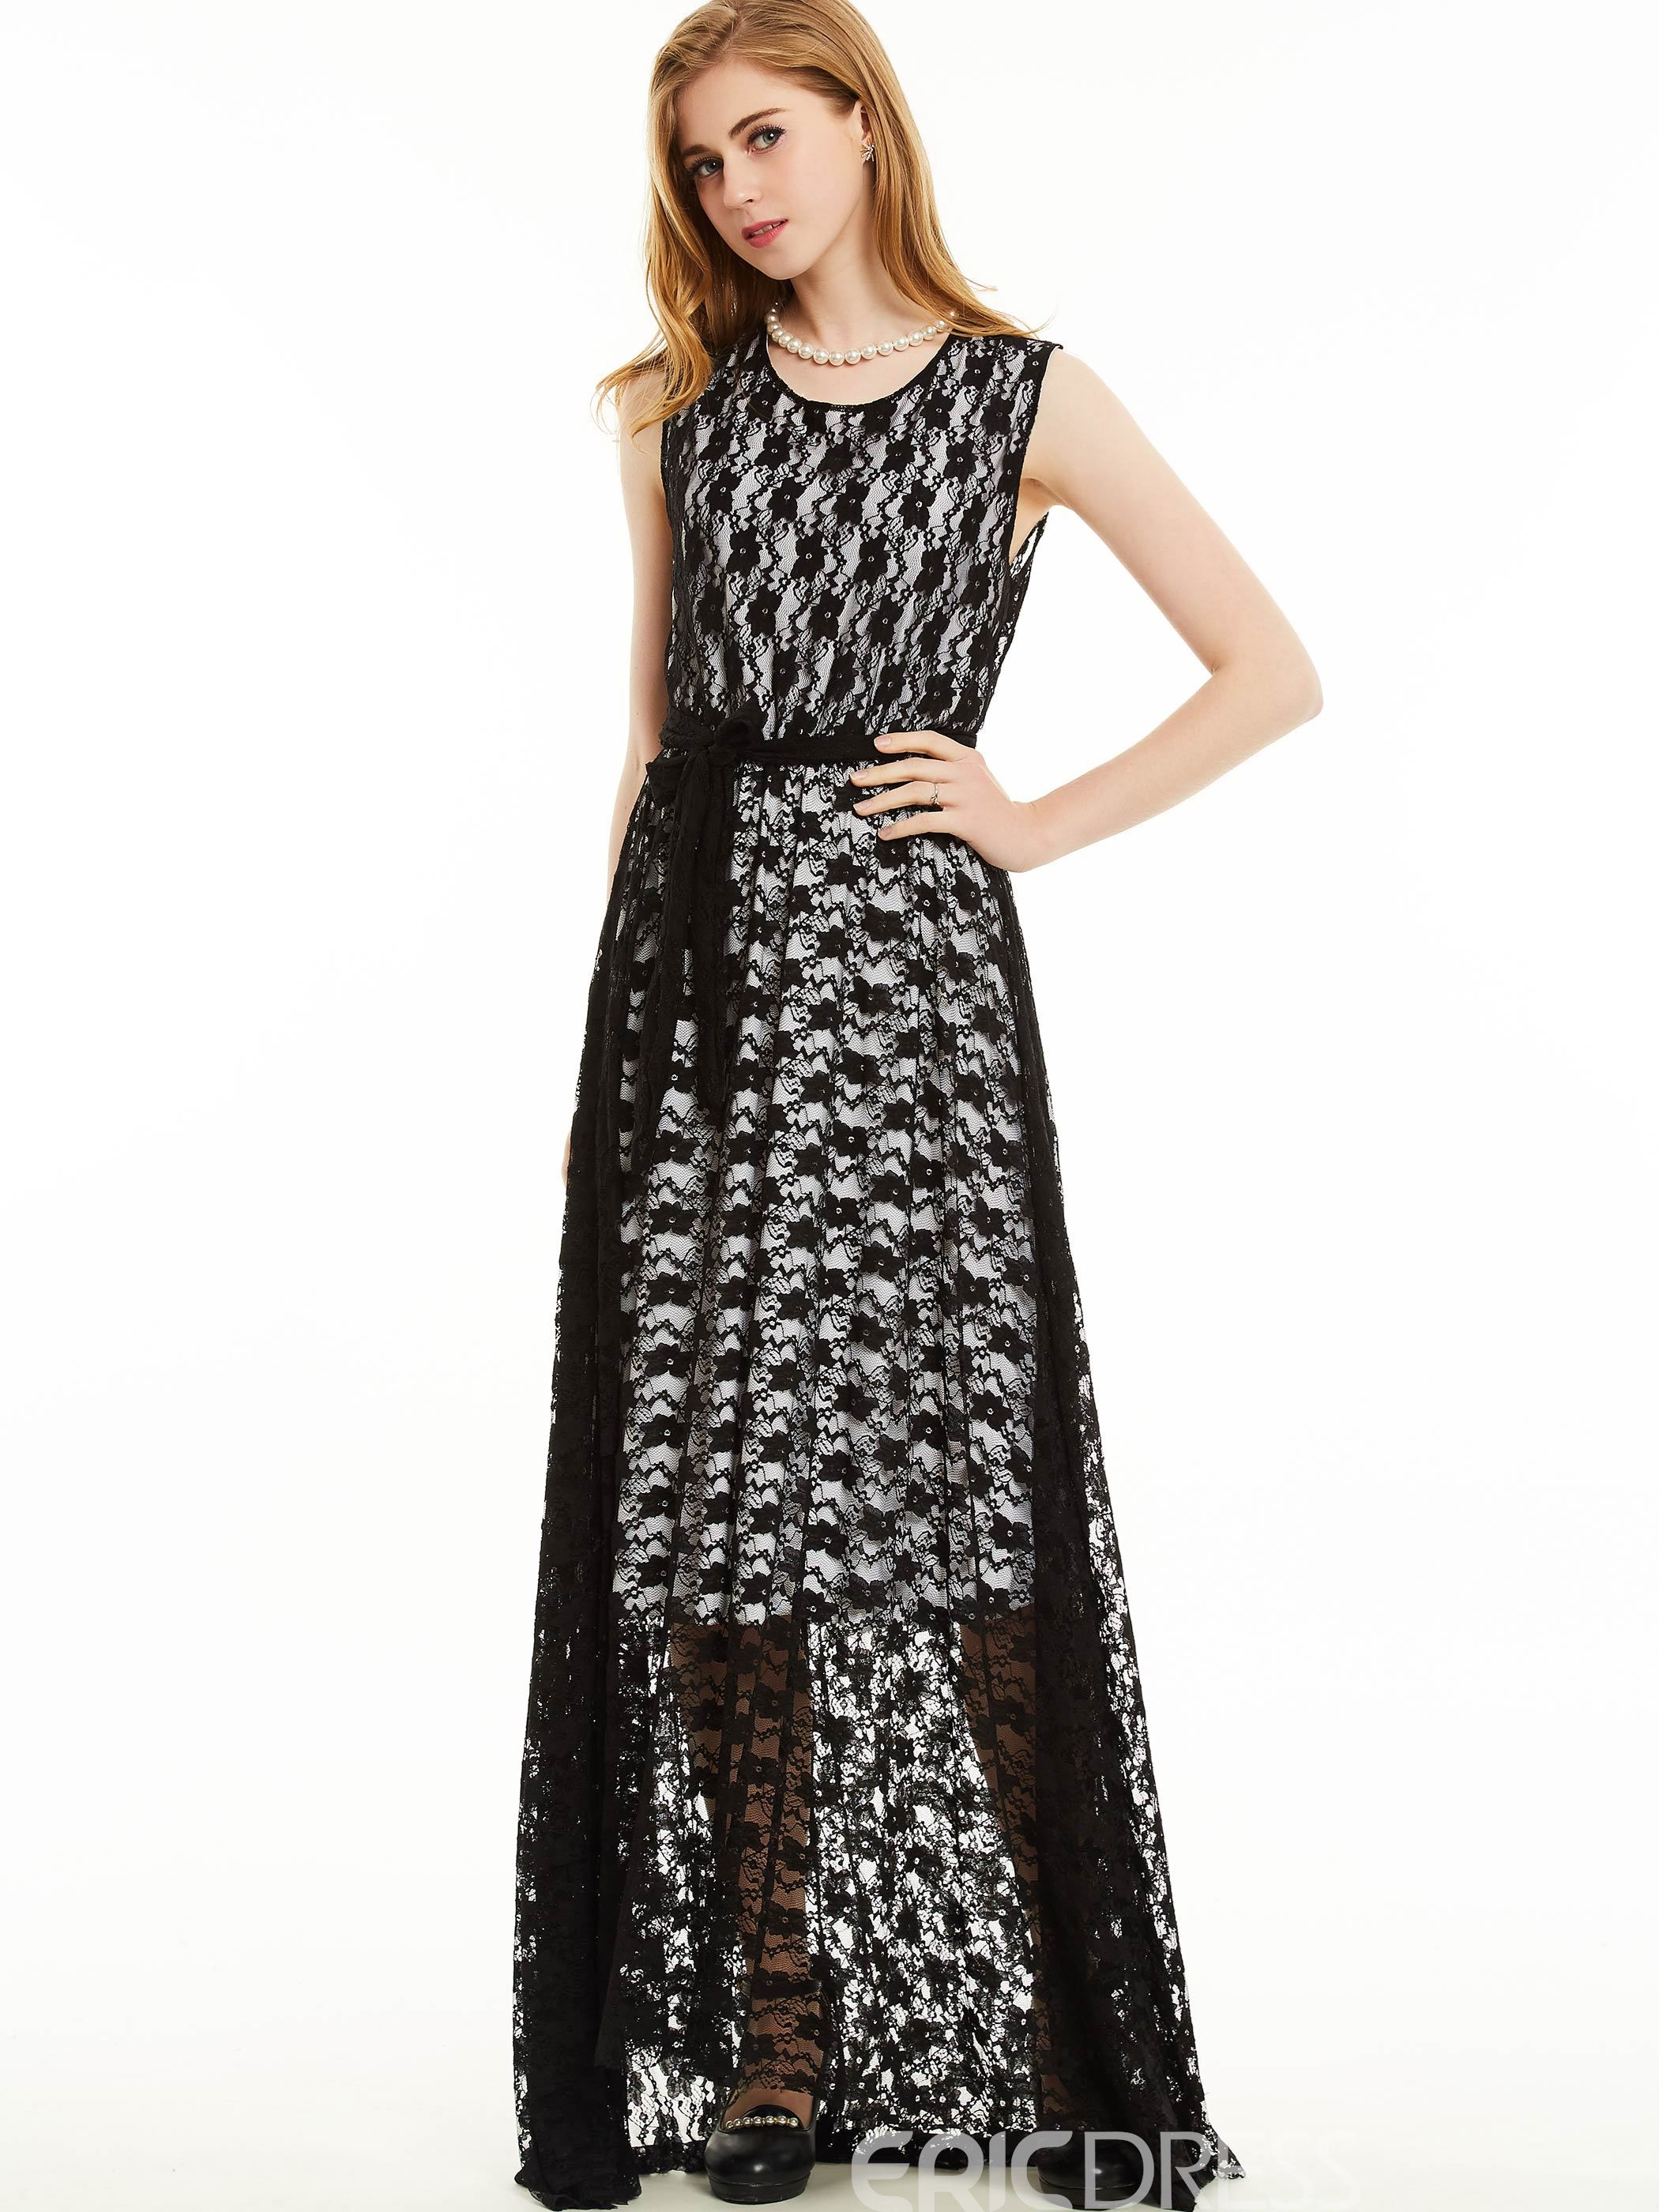 Ericdress Round Neck Sleeveless Floral Lace Dress